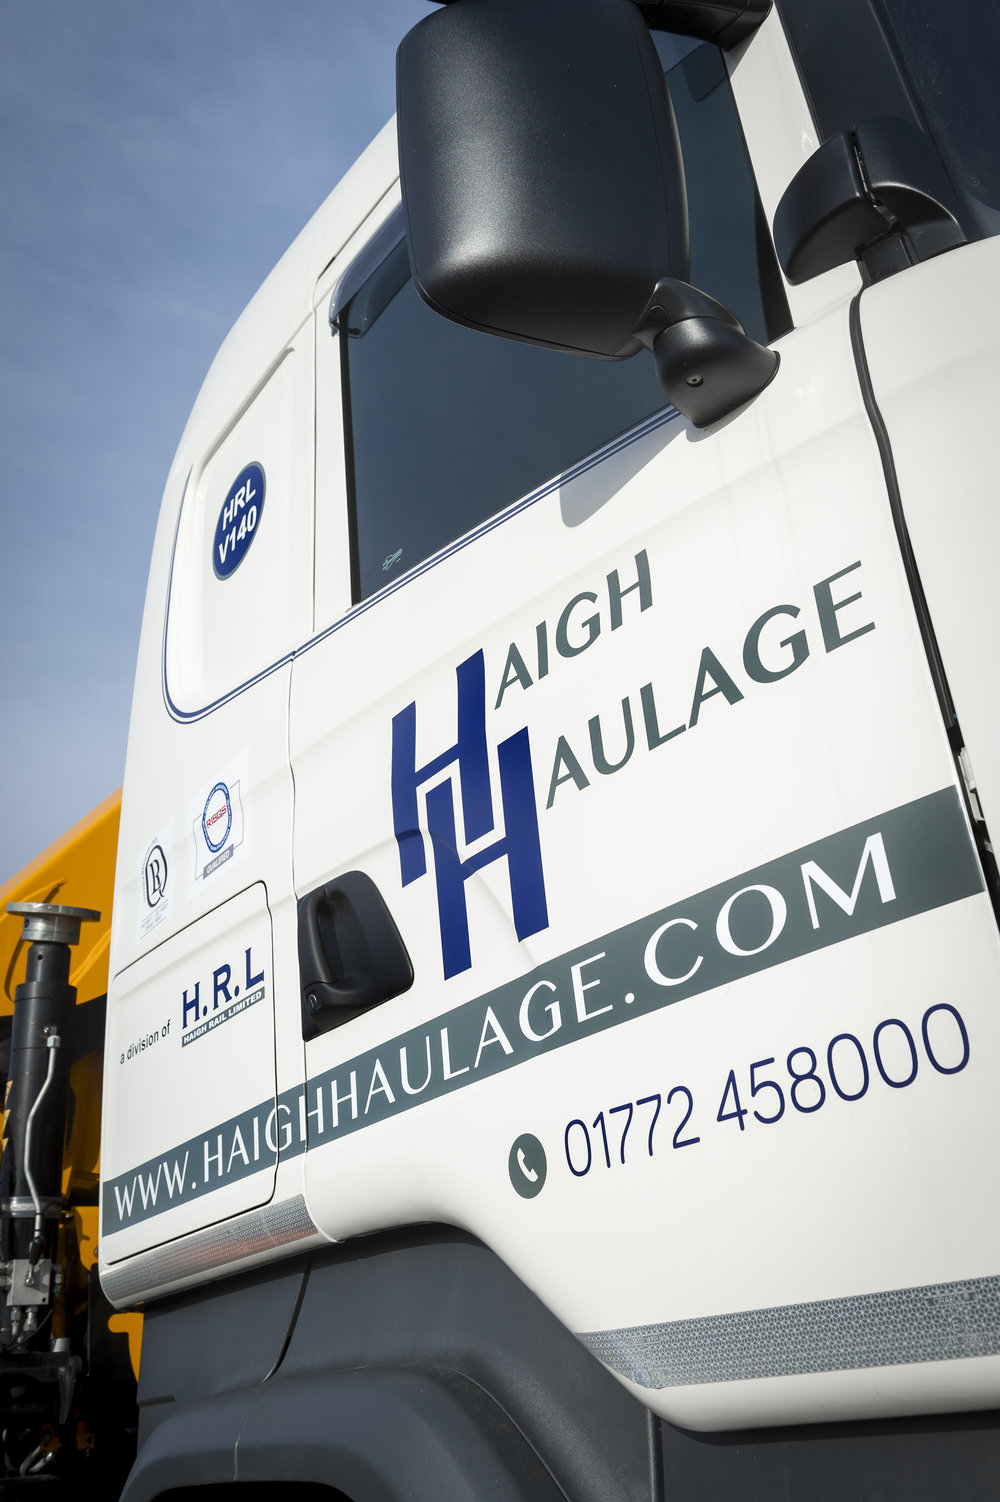 Branding and livery for Haigh Haulage